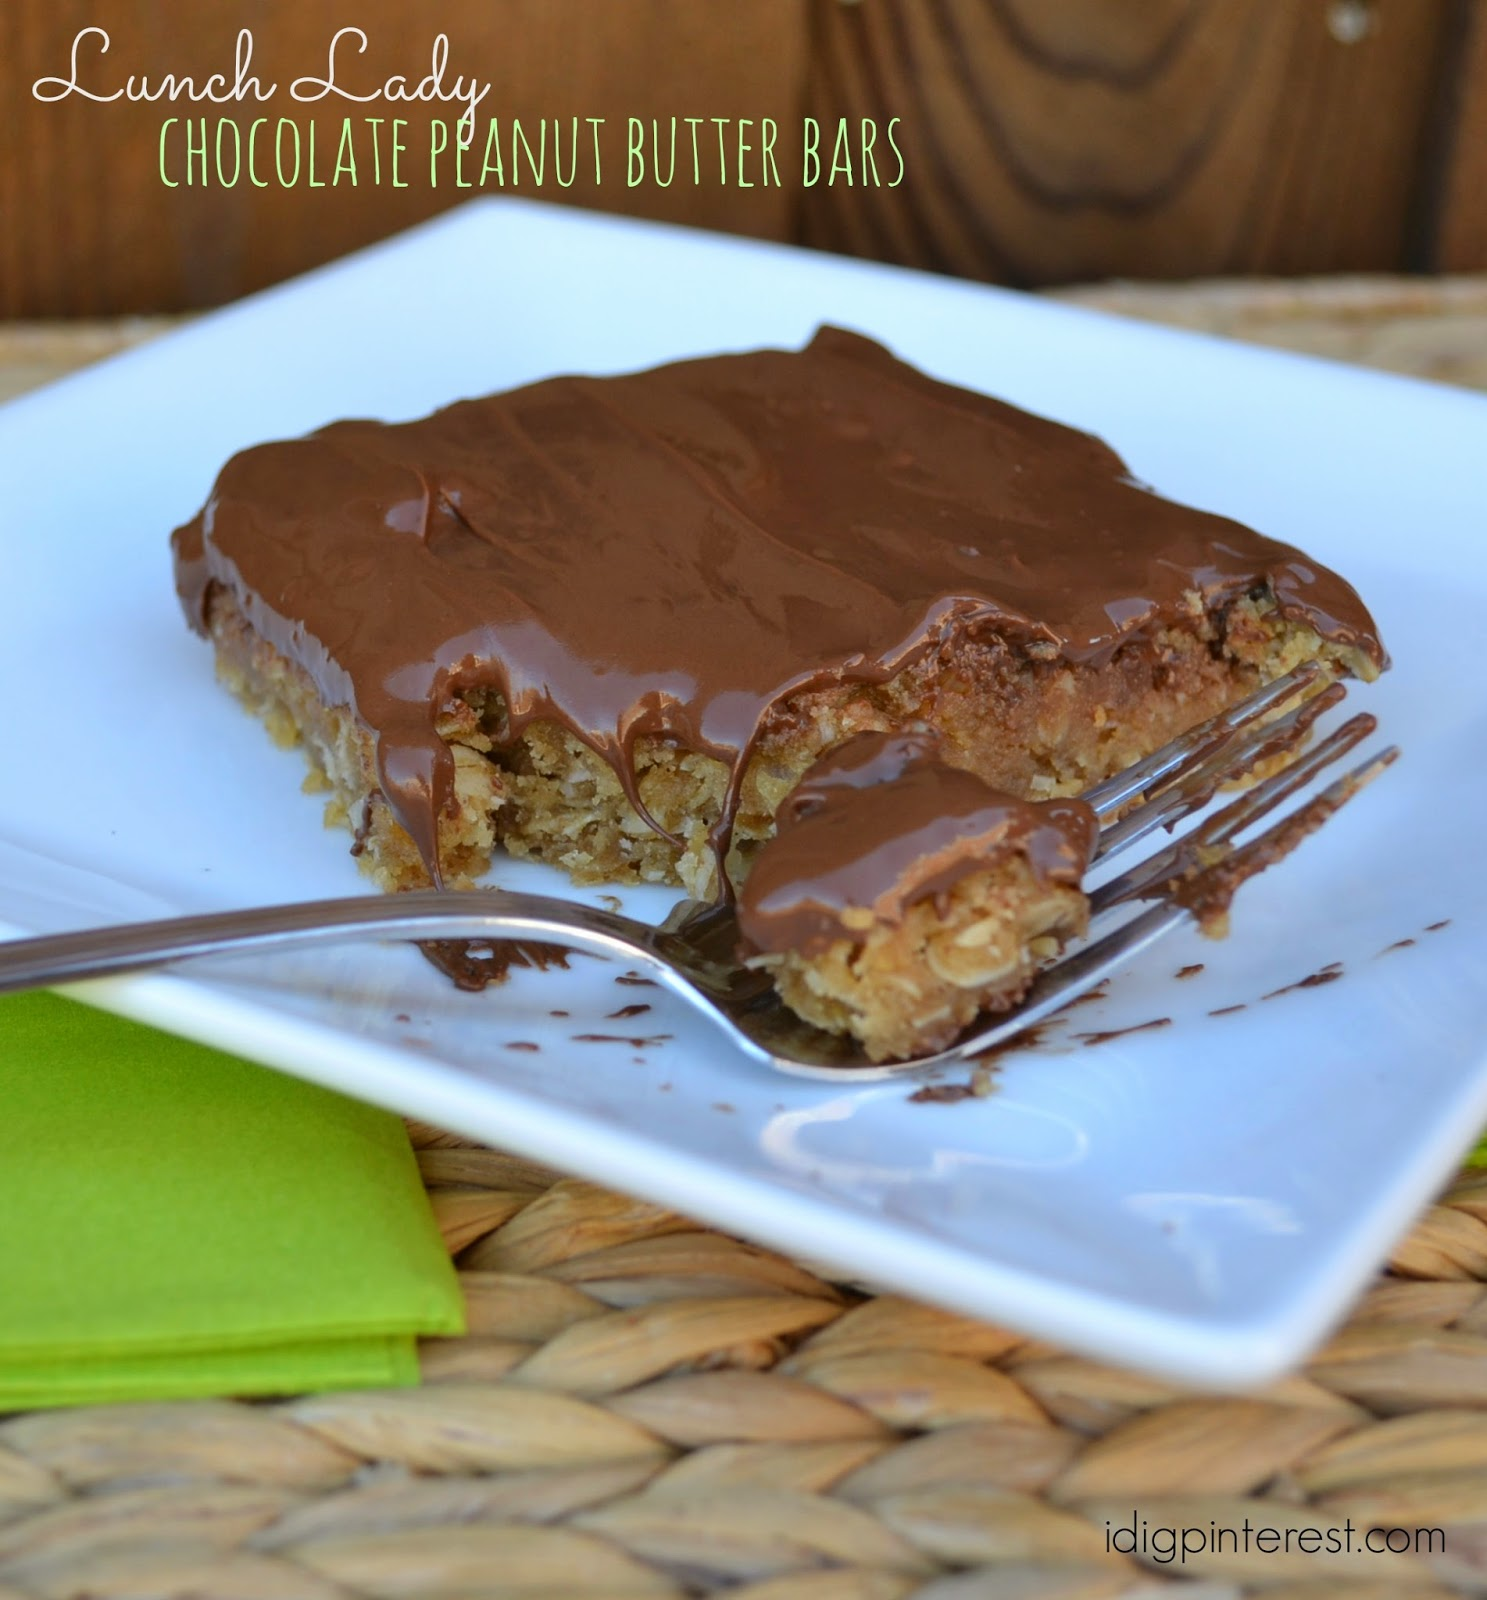 lunch lady chocolate peanut butter bars i dig